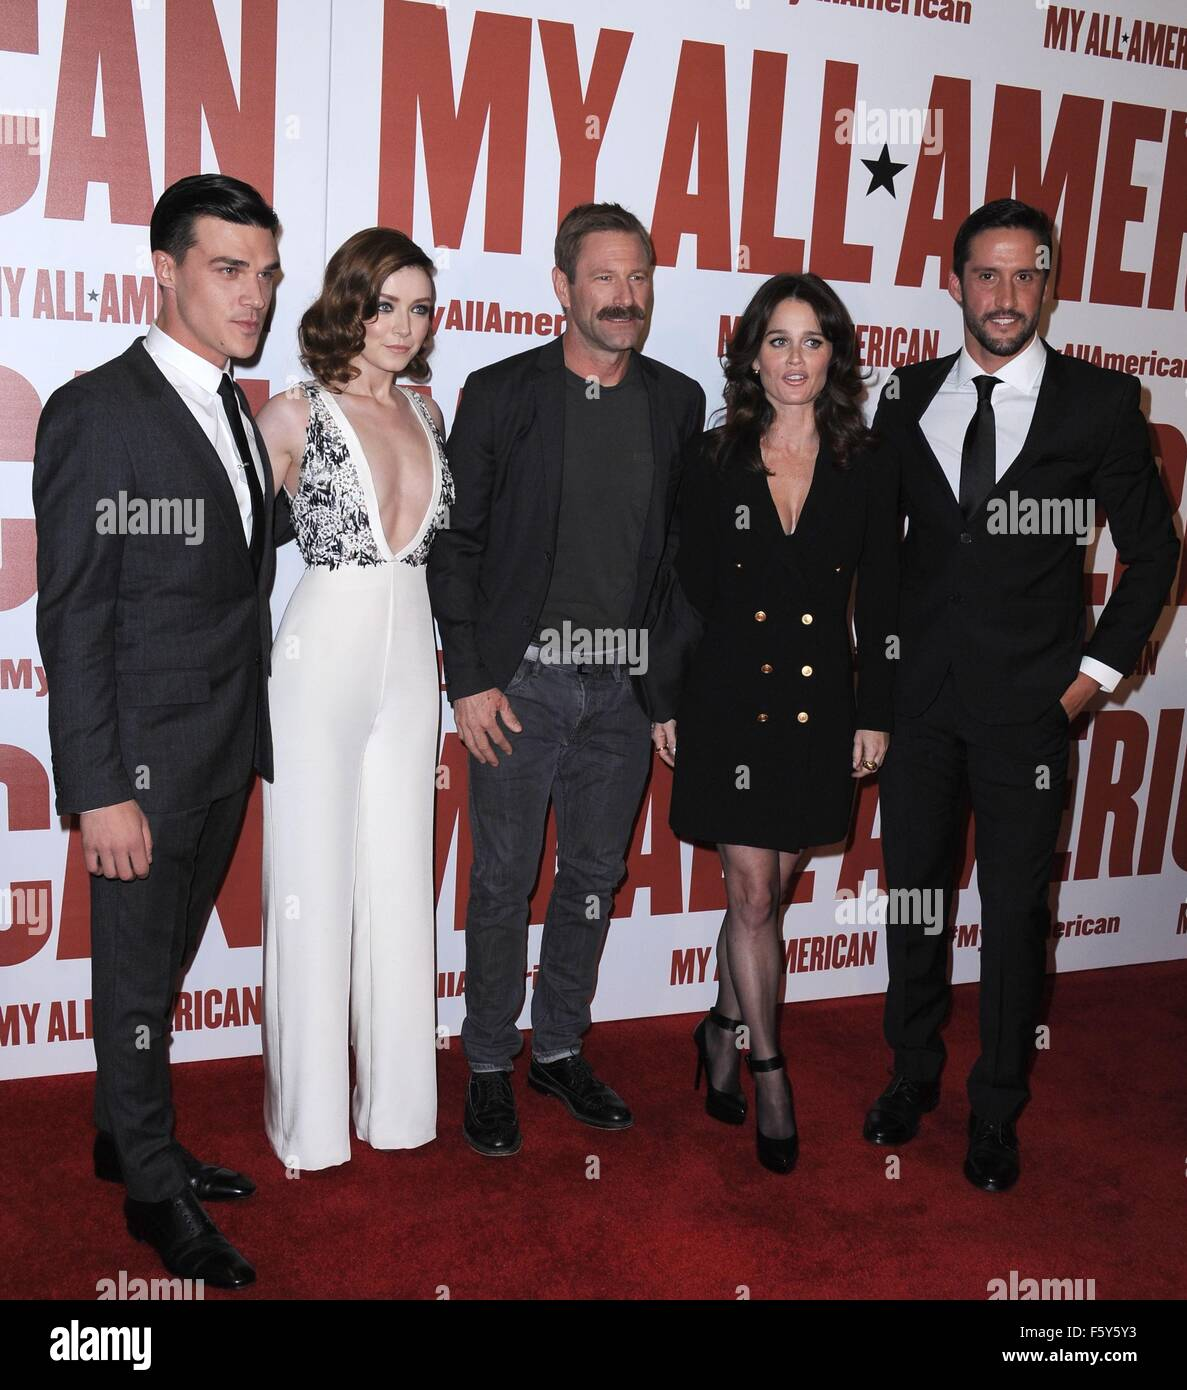 Finn Wittrock Sarah Bolger Aaron Eckhart Robin Tunney Juston Street At Arrivals For MY ALL AMERICAN Premiere The Grove Los Angeles CA November 9